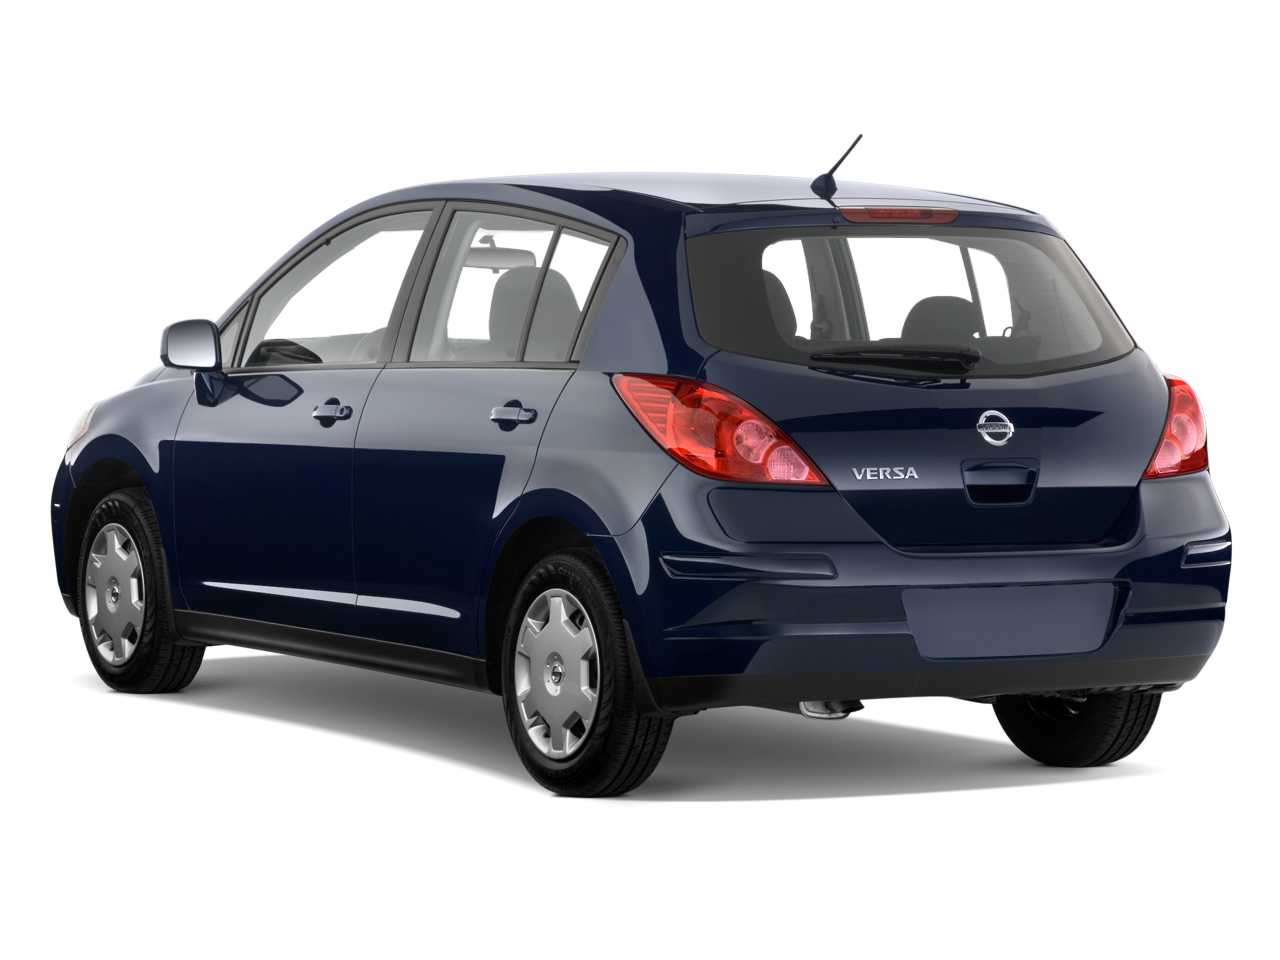 Nissan Adds Fuel Economy To The Versa And Infiniti G